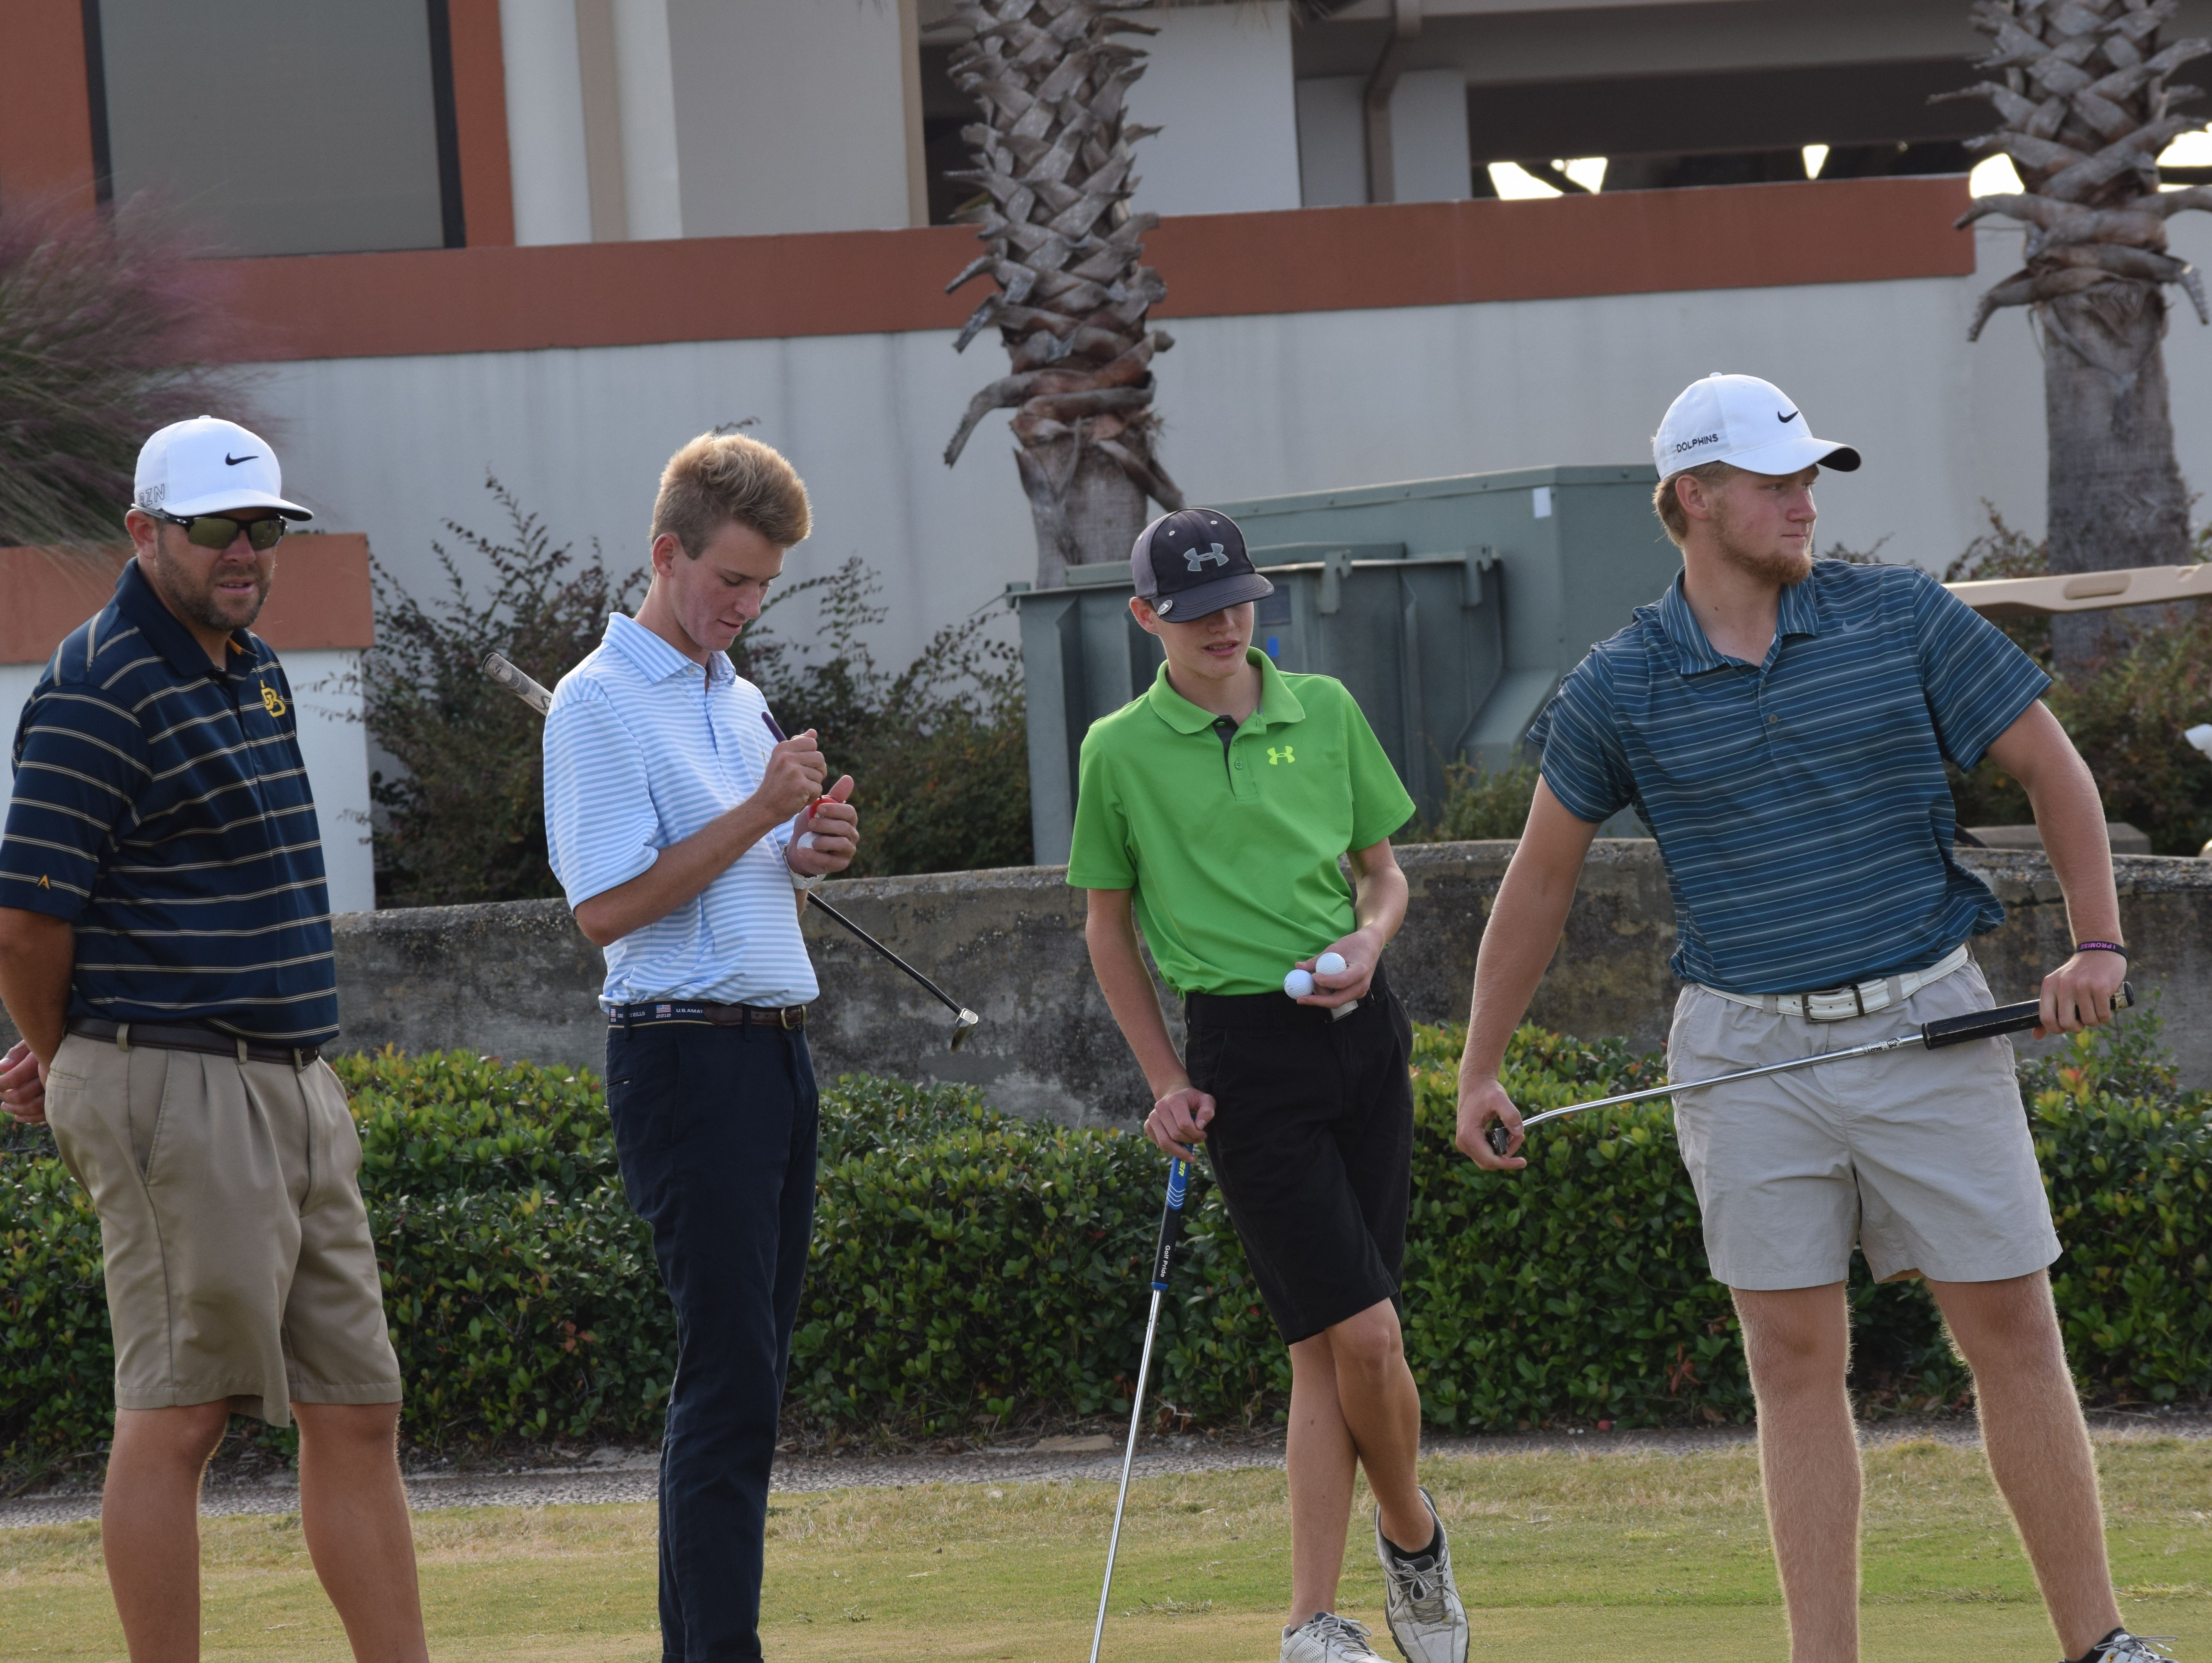 Gulf Breeze High boys golf coach Adam Smith watches three of his players, Brian Richards (left), Luke Ellis (middle) and RJ Phillips on putting green Wednesday at Tiger Point Golf Club in preparation for next week's Class 2A state tournament near Orlando.